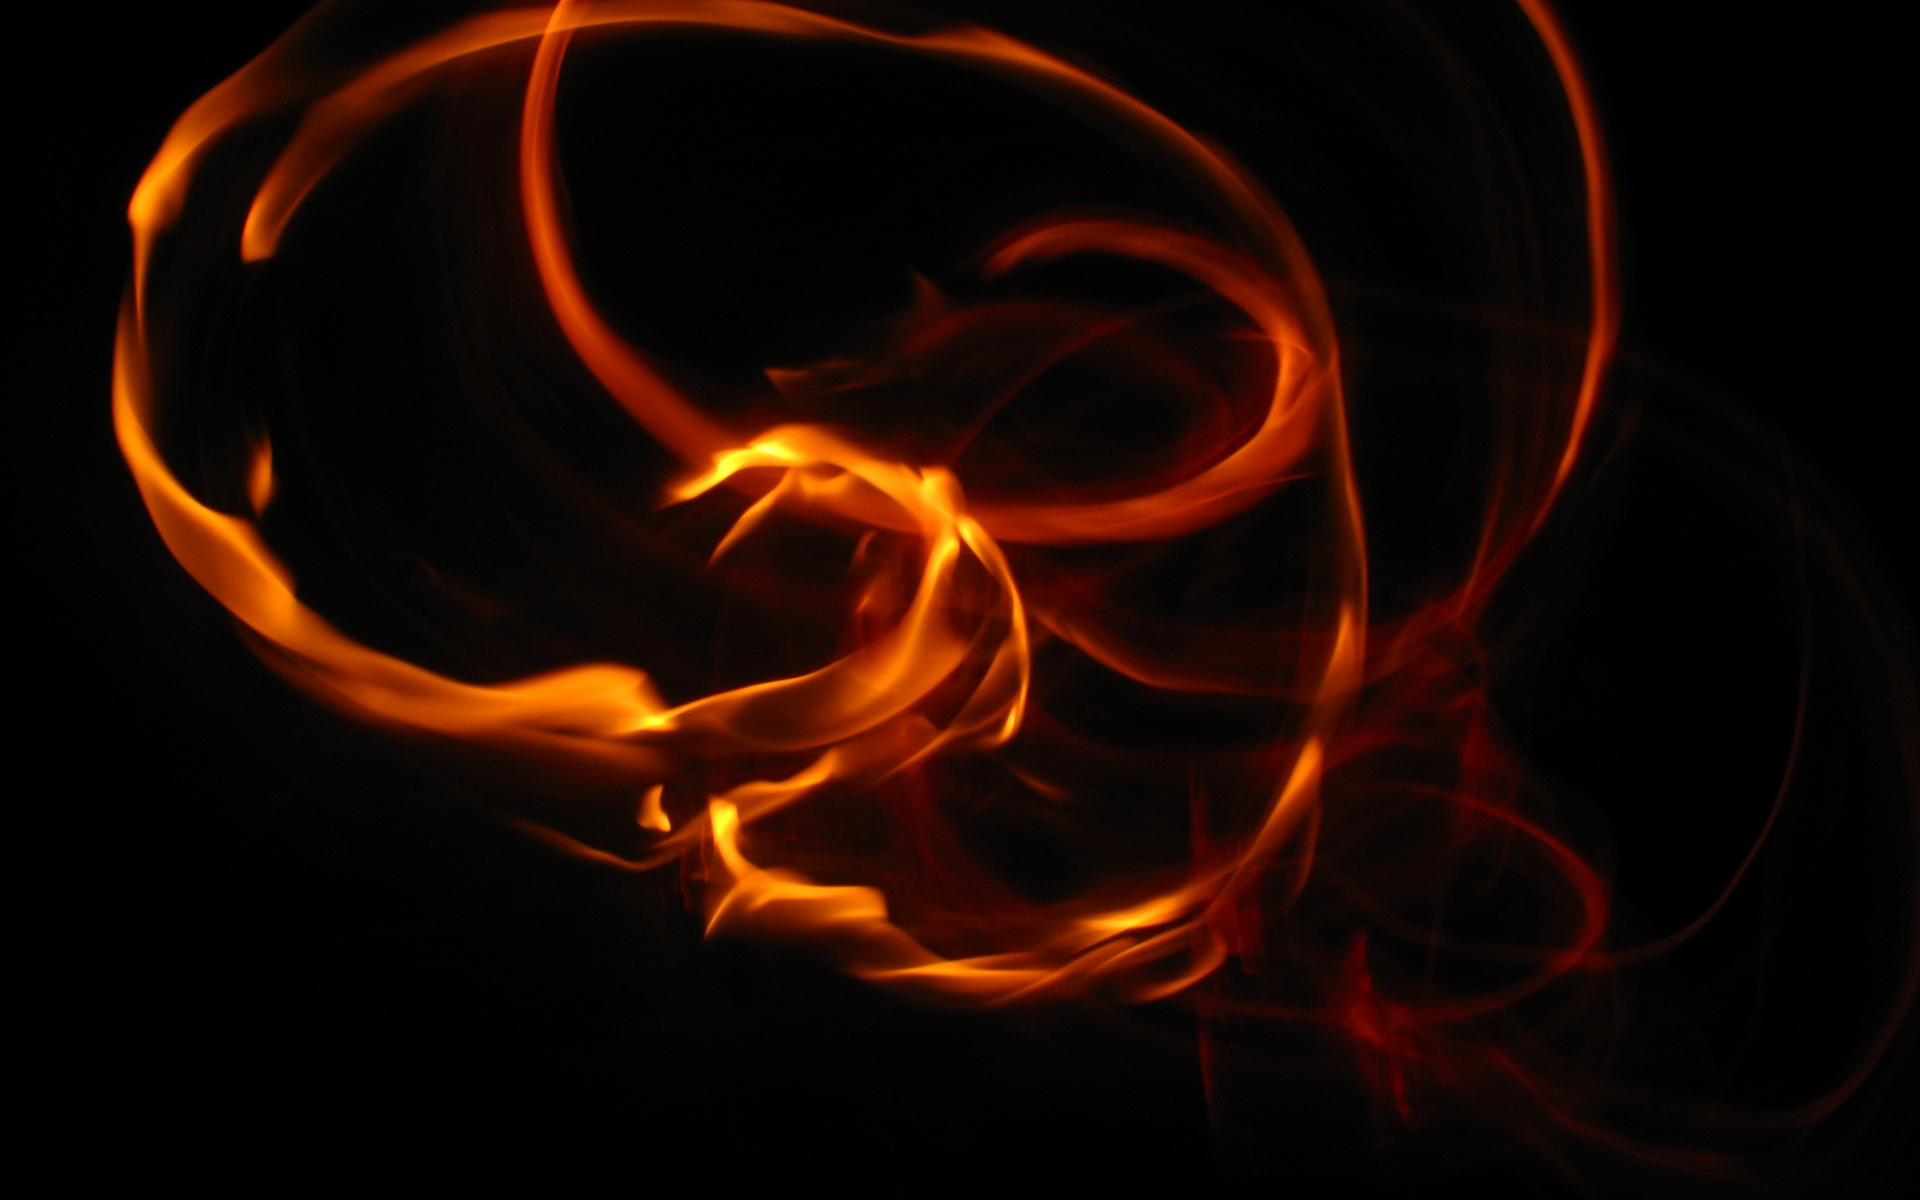 Flames Wallpaper Hd Latest Wallpapers Hd